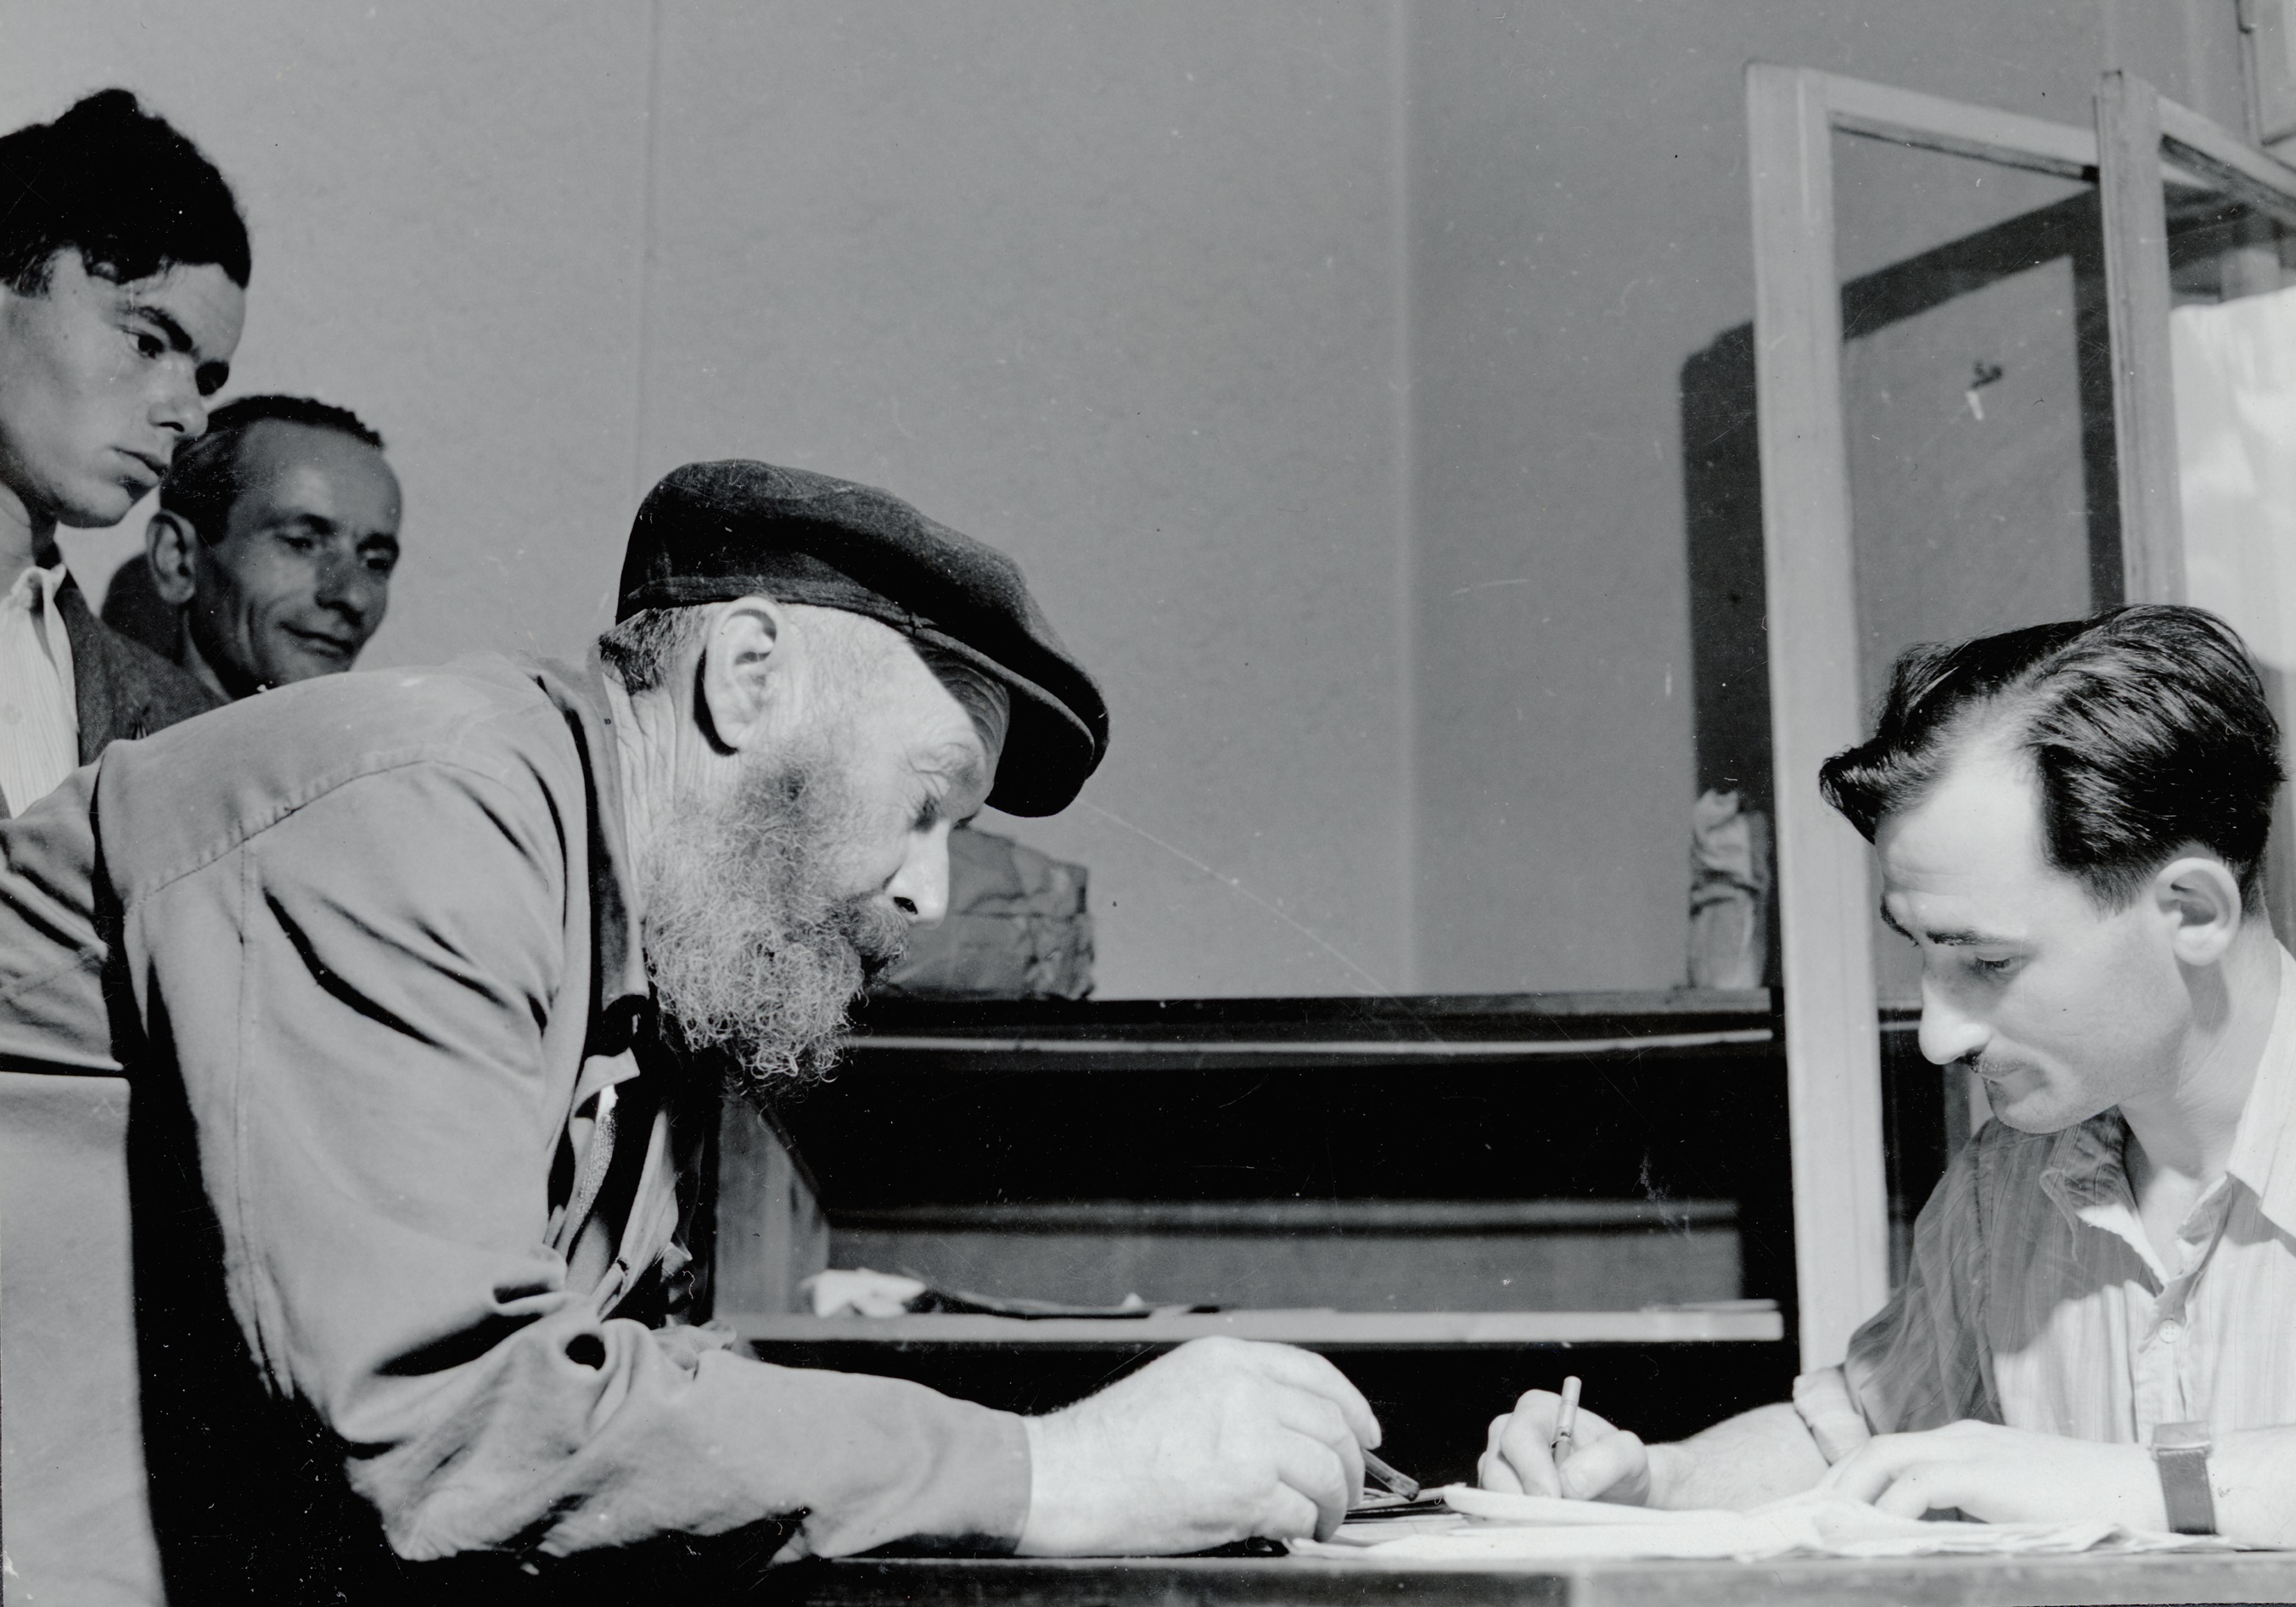 Jewish survivors registering at the employment service of the Central Committee of Jews in Poland, Klodzko, 1946.